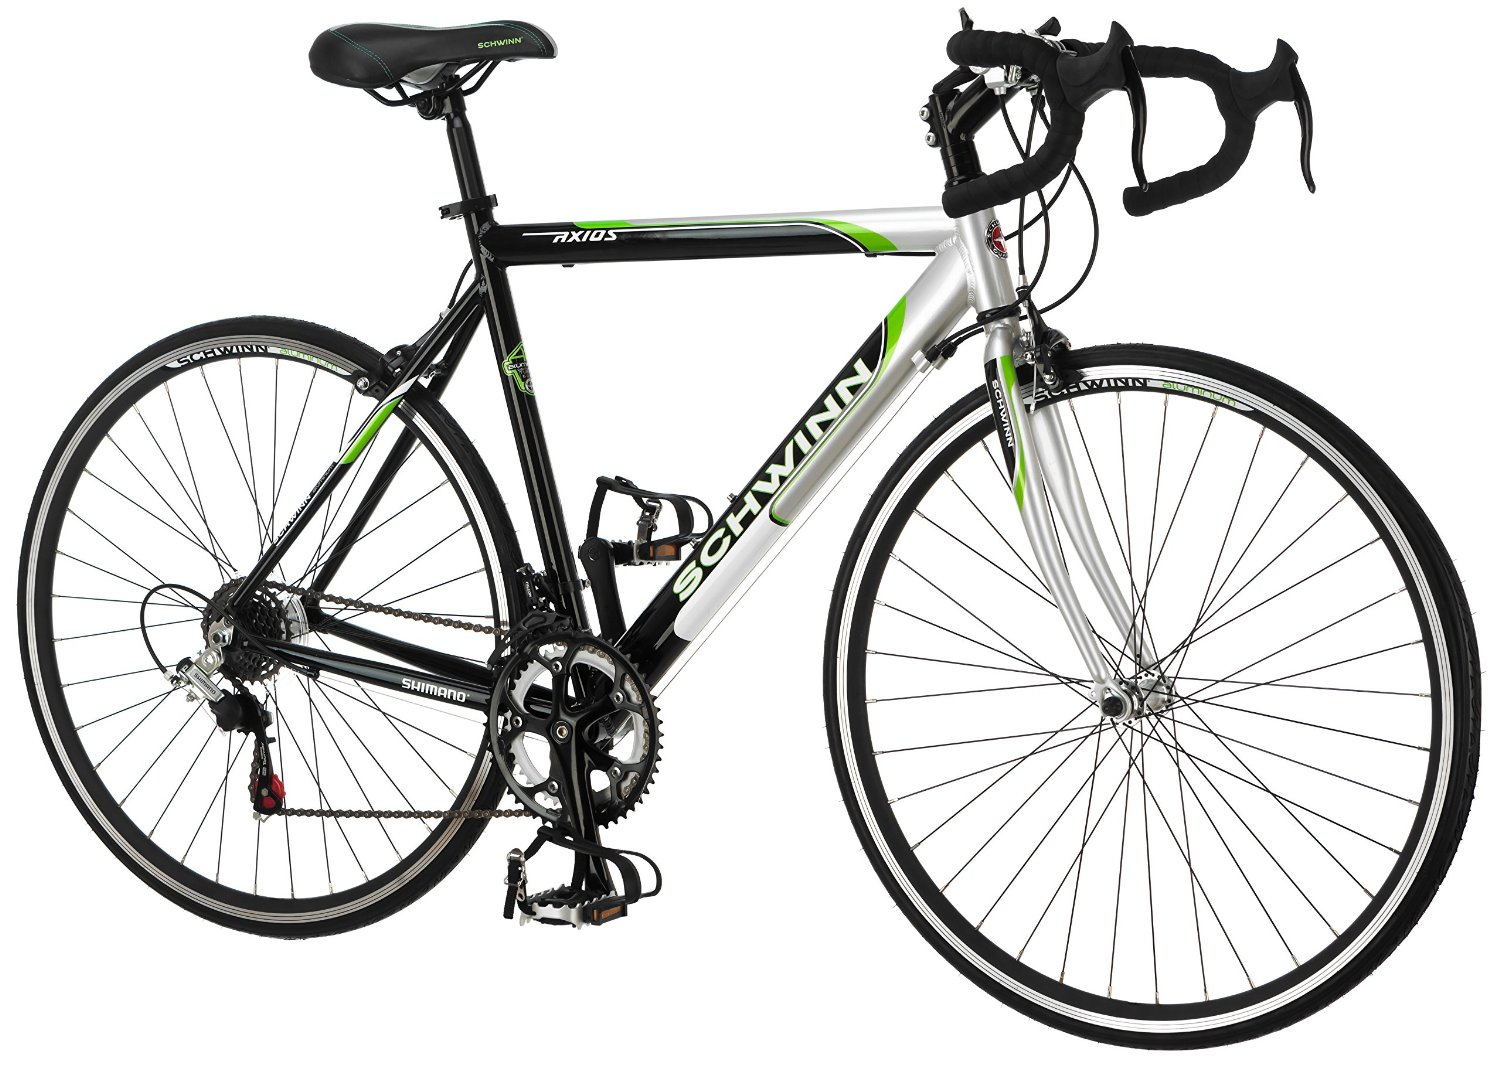 Schwinn Men's Axios 700c Drop Bar Road Bicycle, Silver/Black/Green, 21.5-Inch Frame/55CM